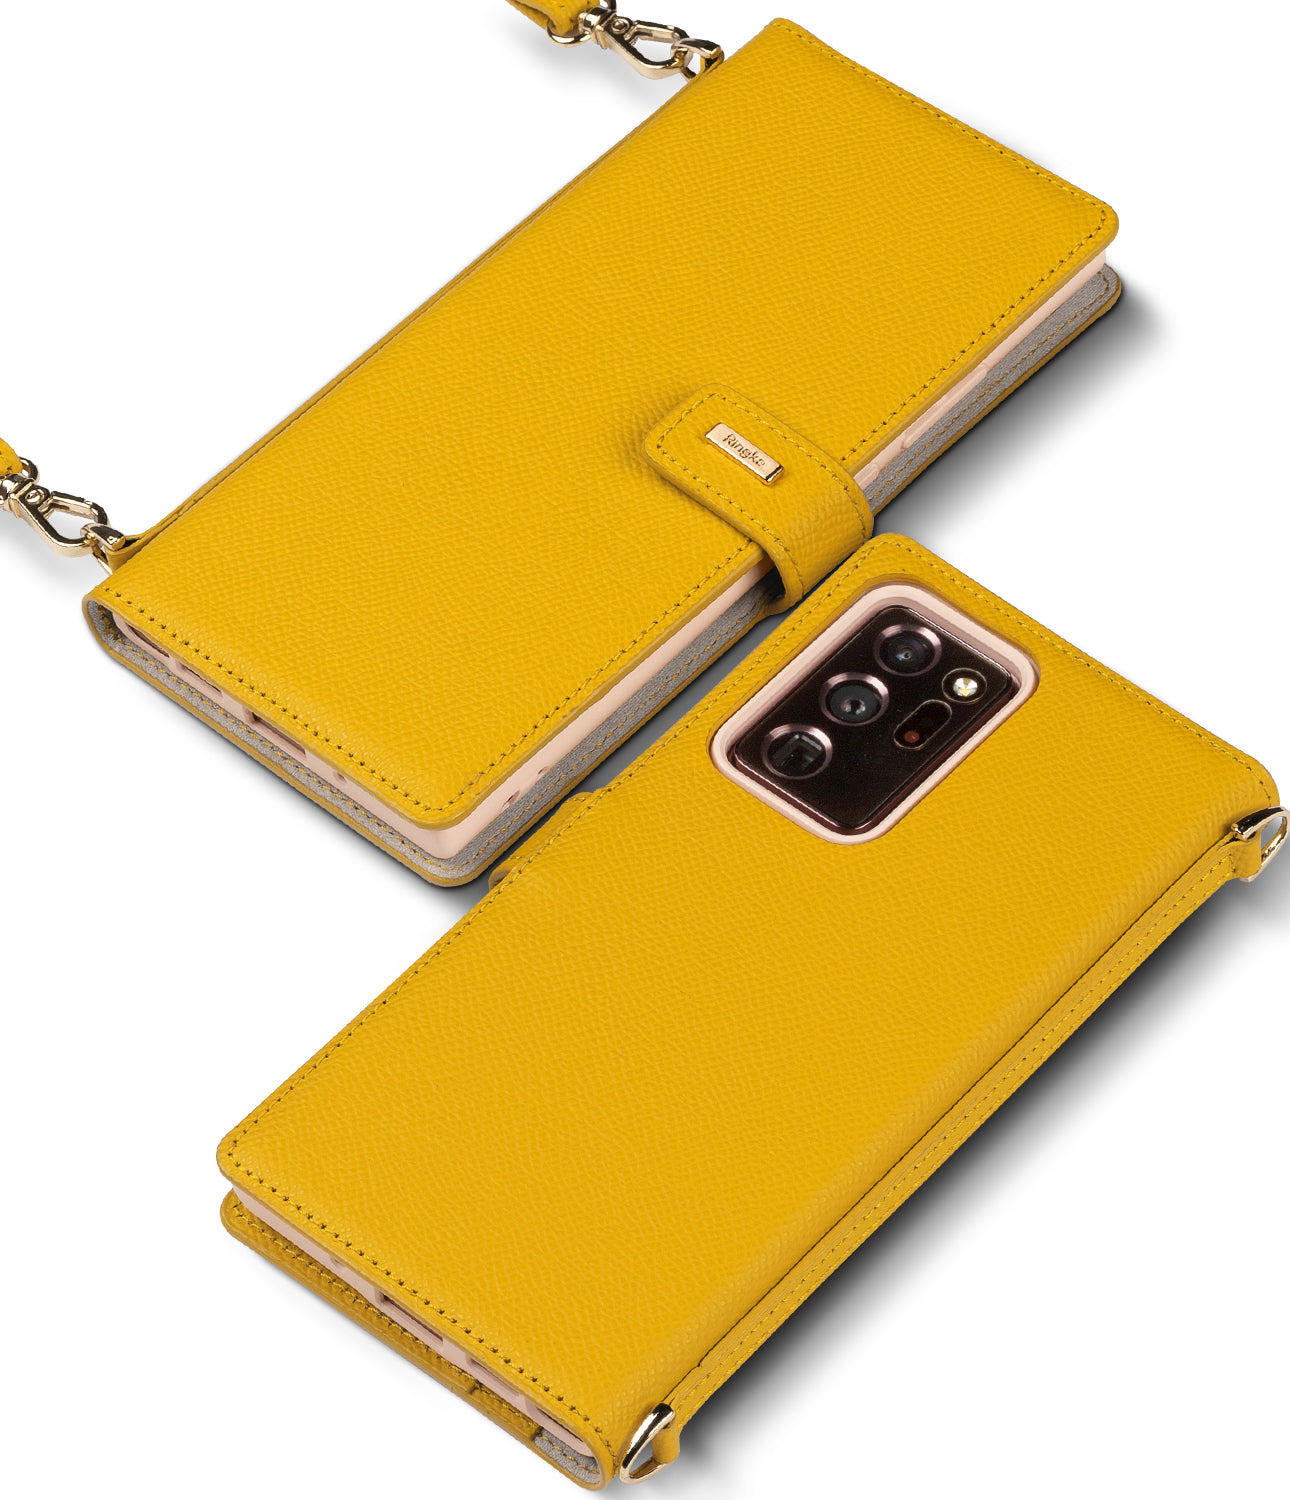 ringke signature folio case for samsung galaxy note 20 ultra - yellow